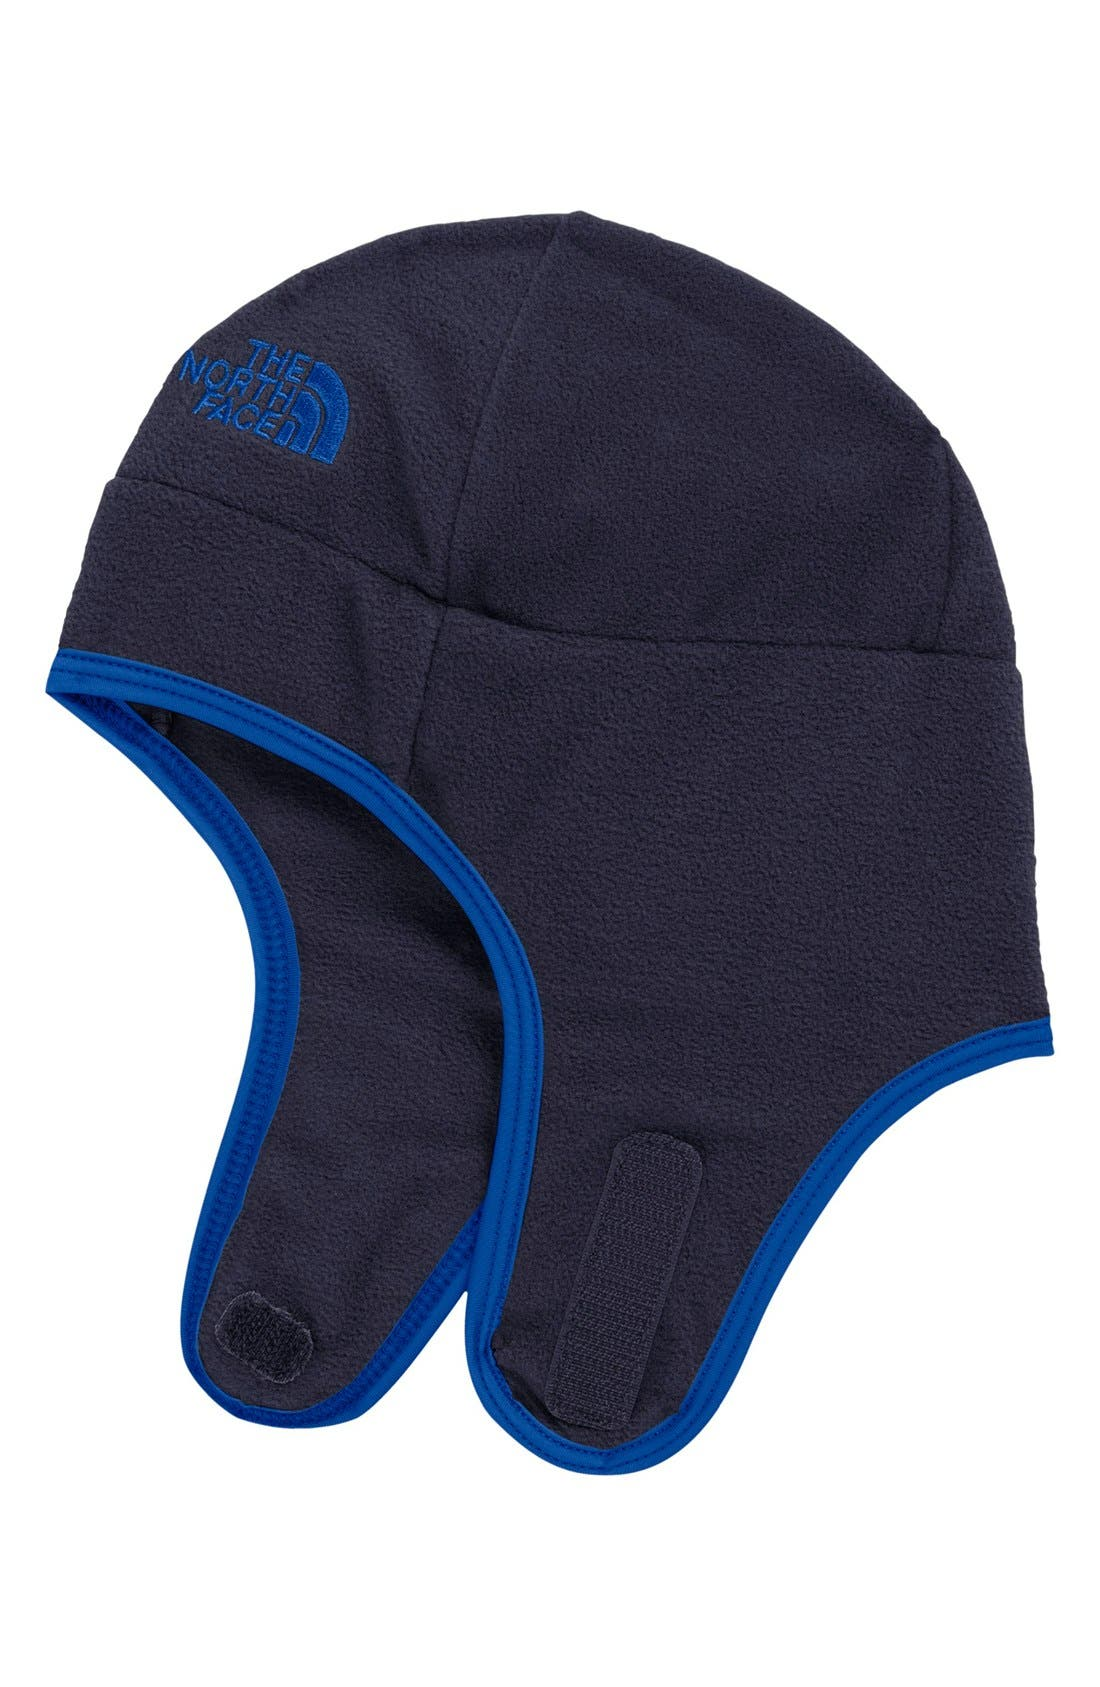 THE NORTH FACE,                             'Baby Nugget' Beanie,                             Main thumbnail 1, color,                             400